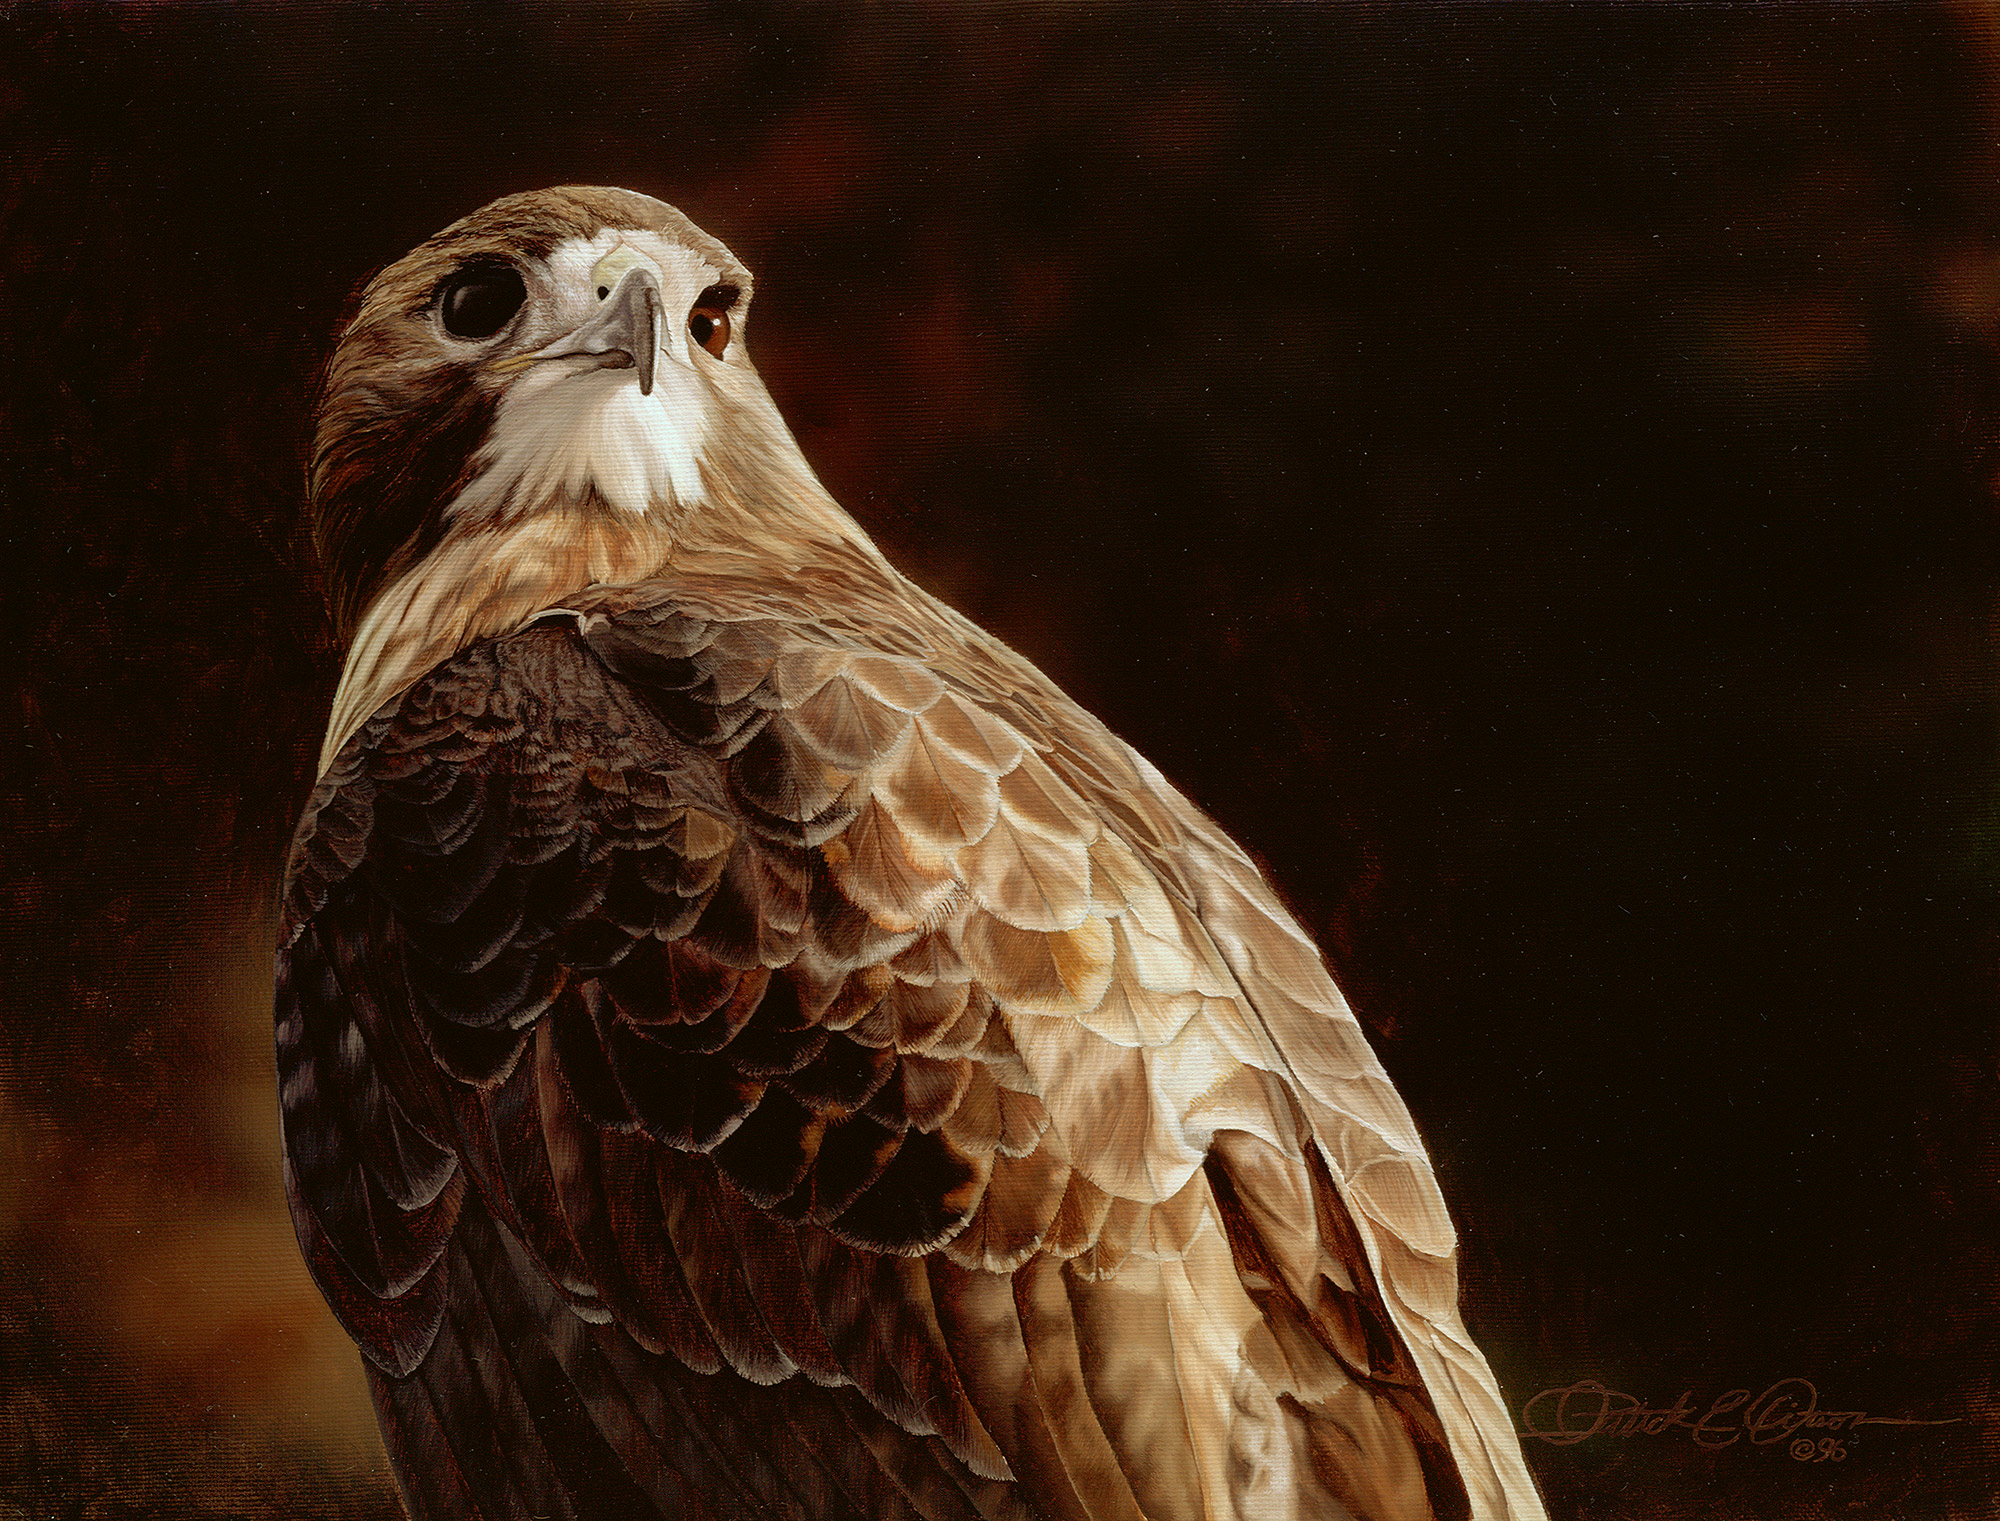 Evening-Hunt---Red-tailed-Hawk---22x26